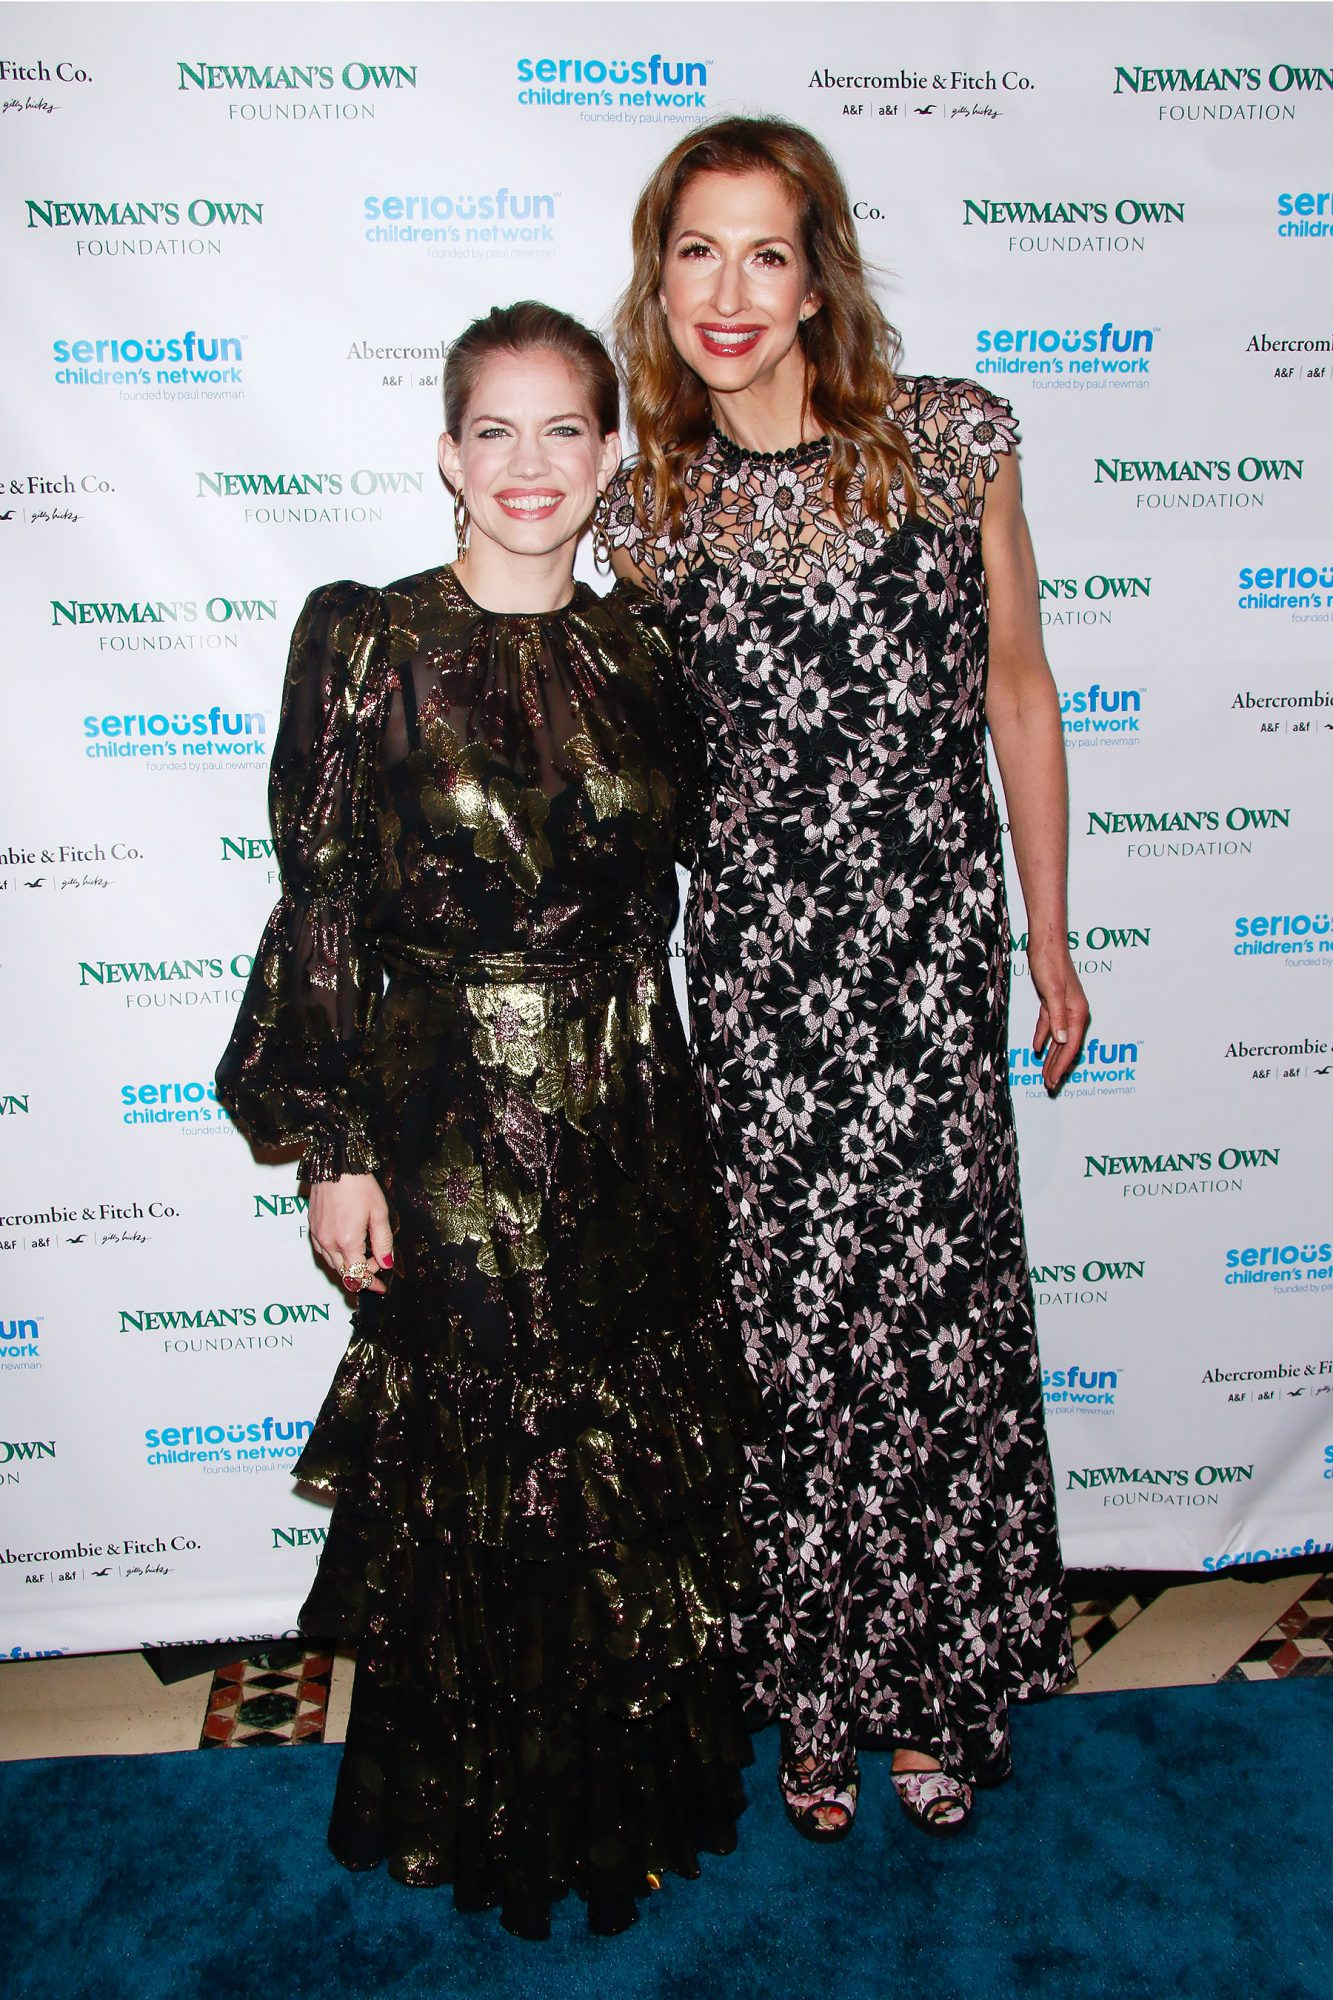 Anna Chlumsky and Alysia Reiner